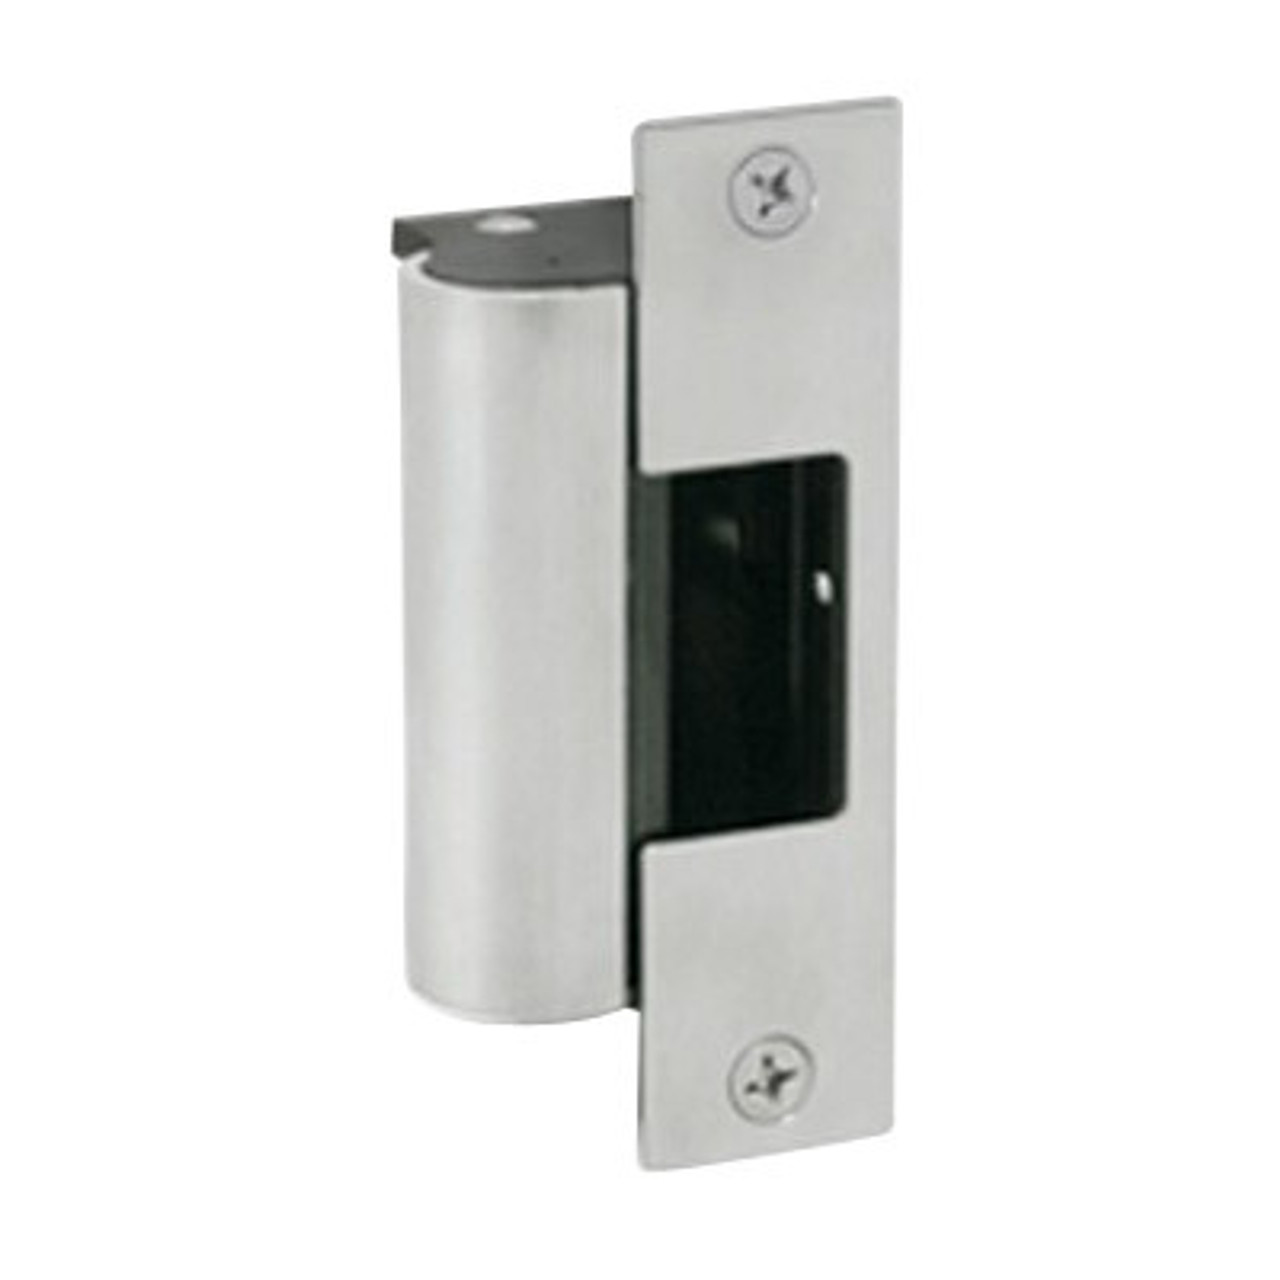 1006CLB-630 Hes 1006 Series Complete Electric Strike for Latchbolt Lock in Satin Stainless Finish